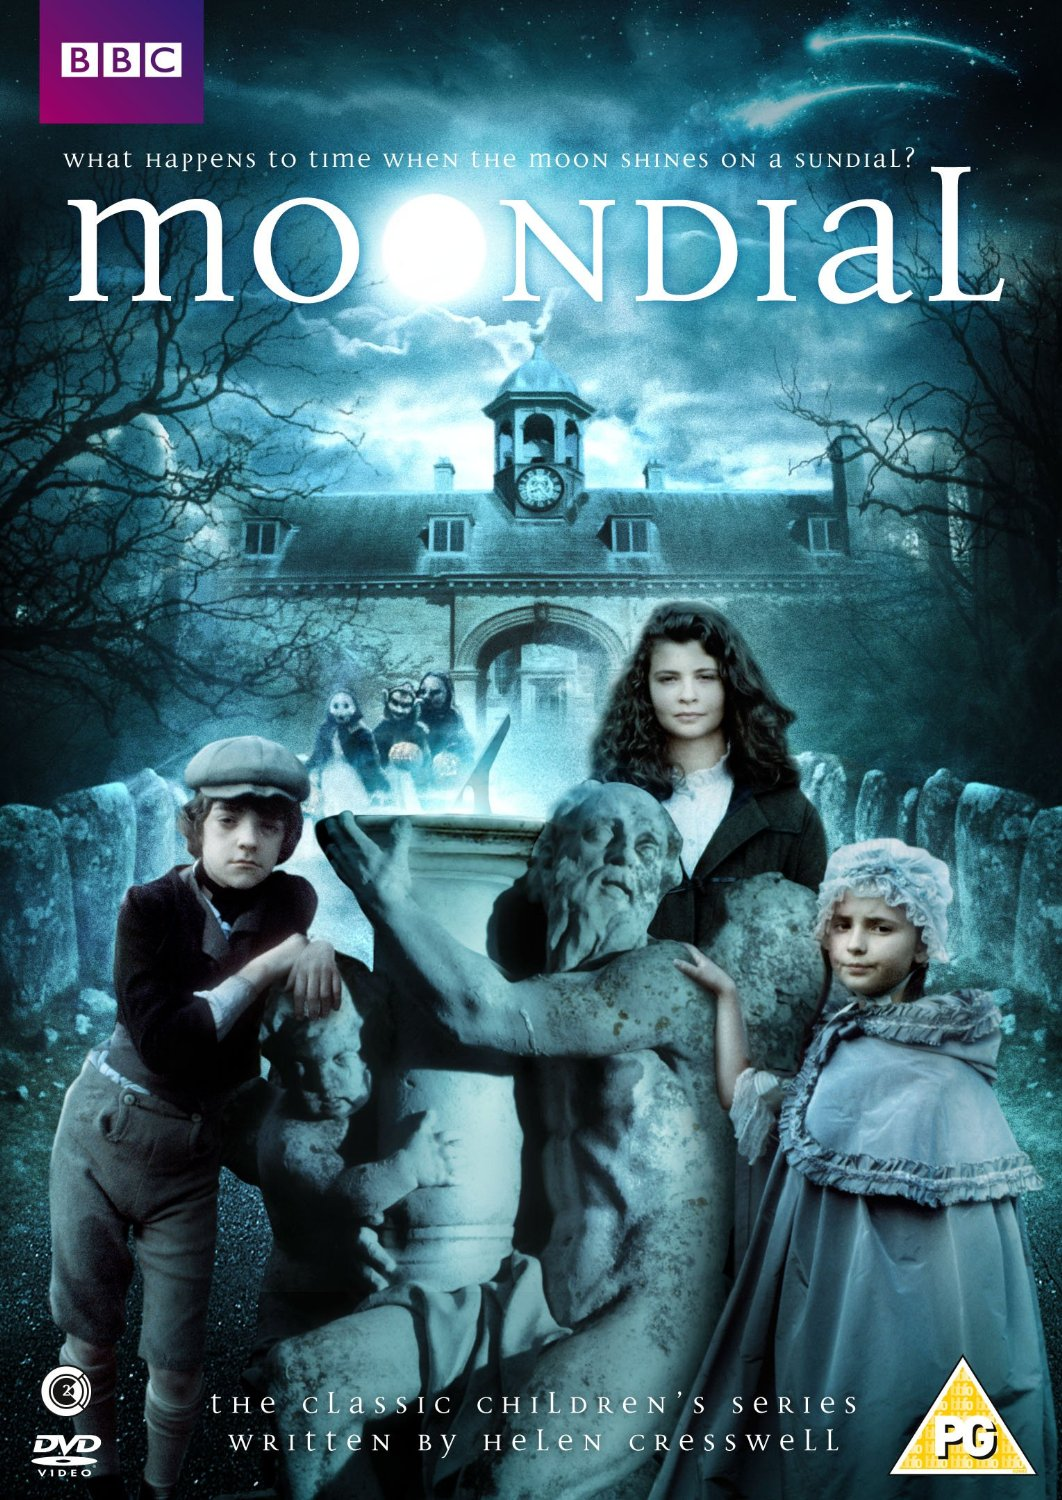 Moondial DVD review: the BBC children's classic returns